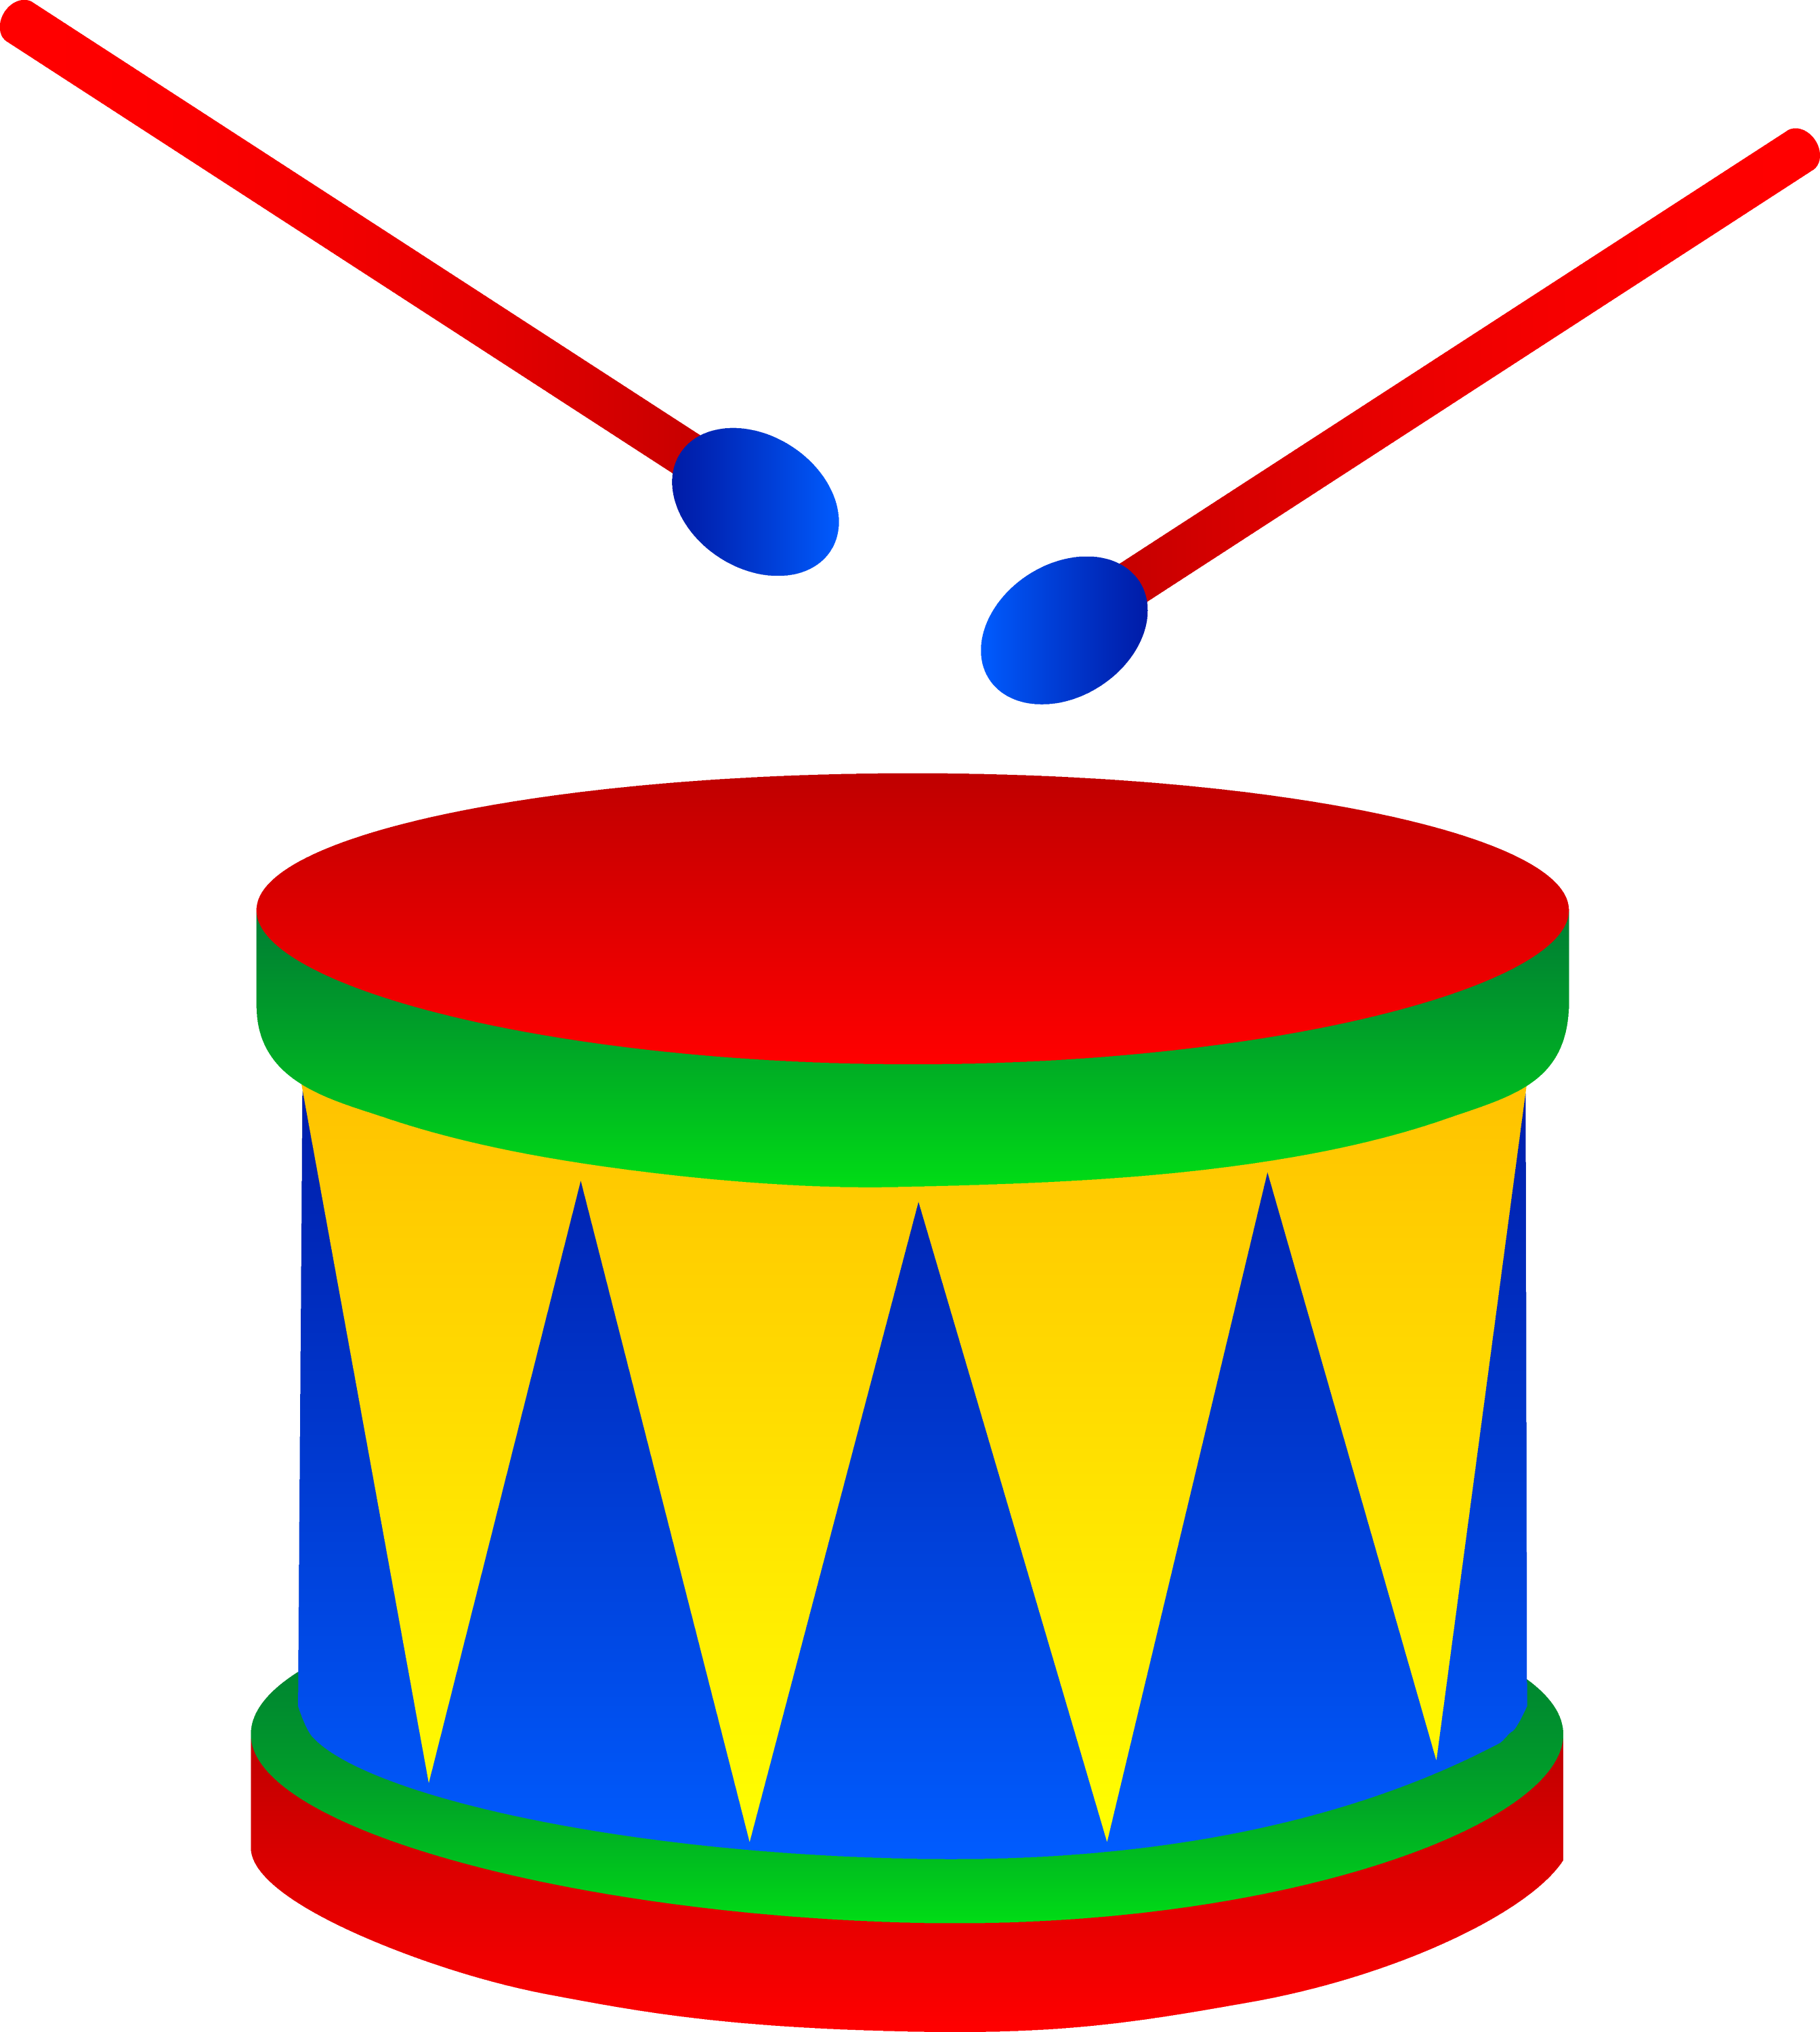 Marching Drum With Drumsticks